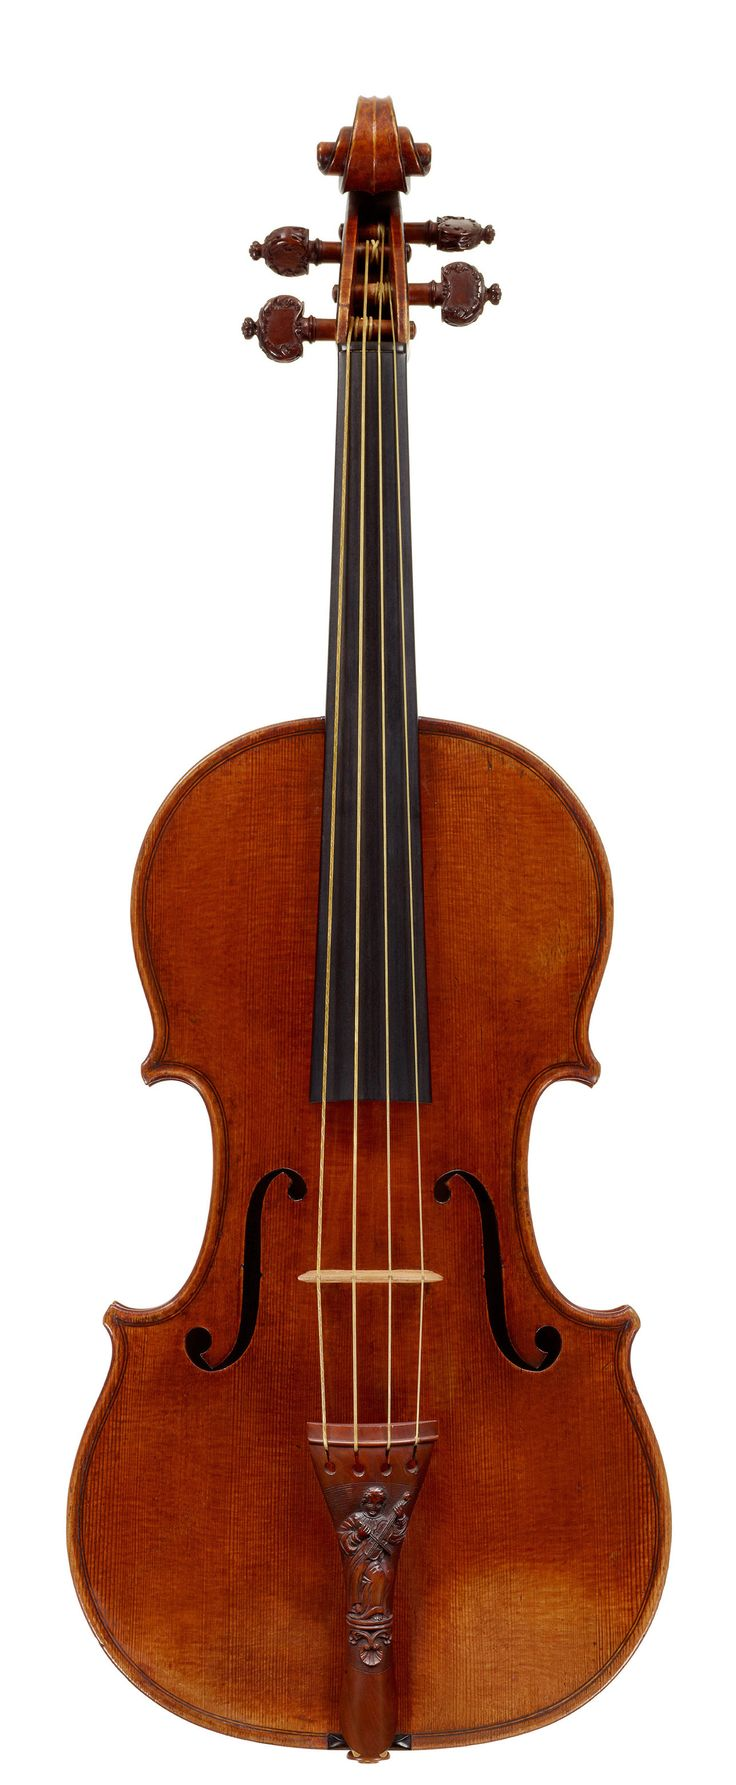 The Most Expensive Musical Instrument Auctioneer Tarisio Sell Named Lady  Blunt Stradivarius Violin Worth 15.9 Million